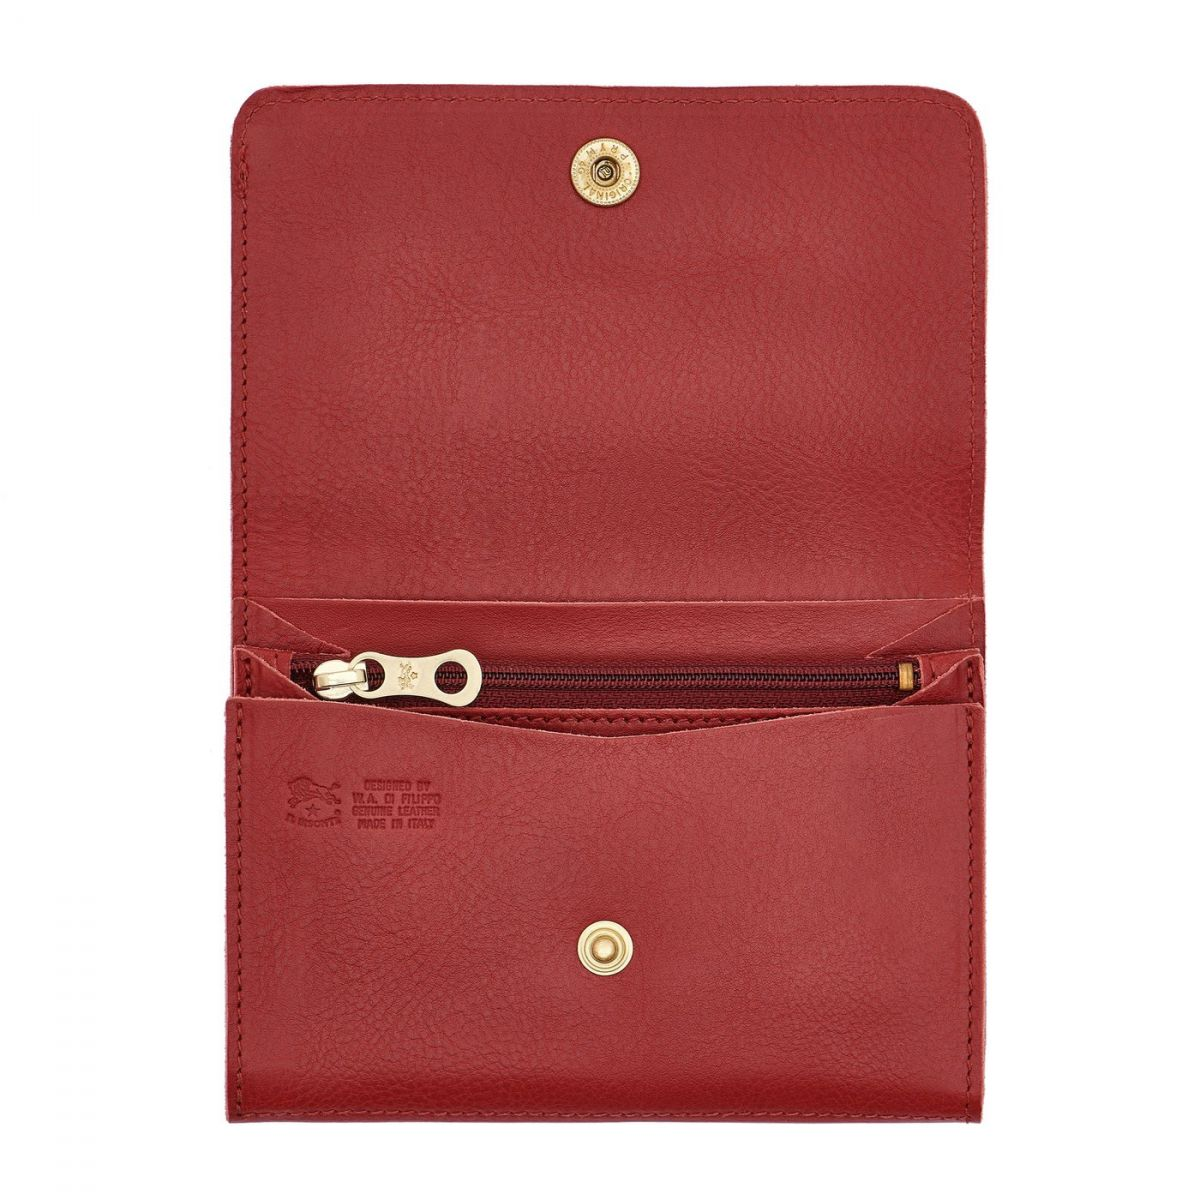 Alberese - Wallet in Cowhide Double Leather color Red - SMW028 | Details